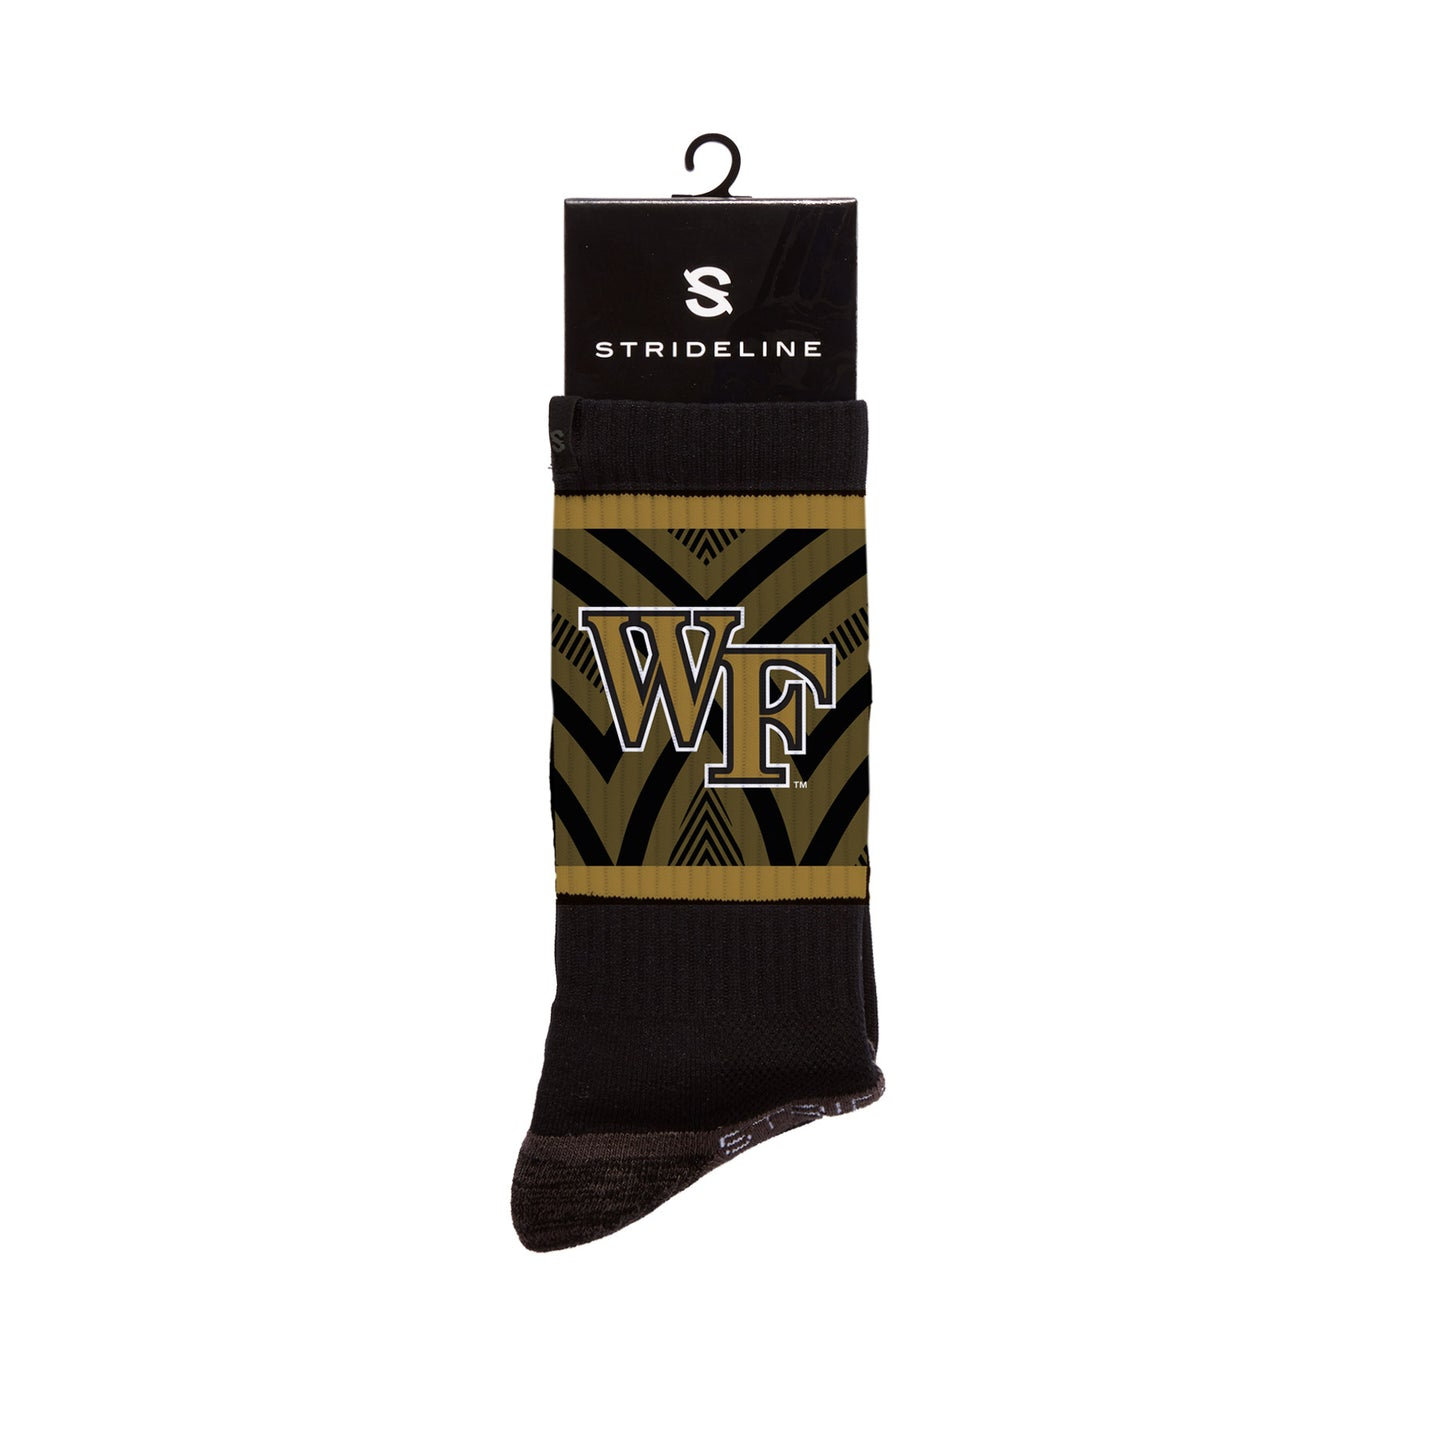 Wake Forest Demon Deacon Black Crew Socks